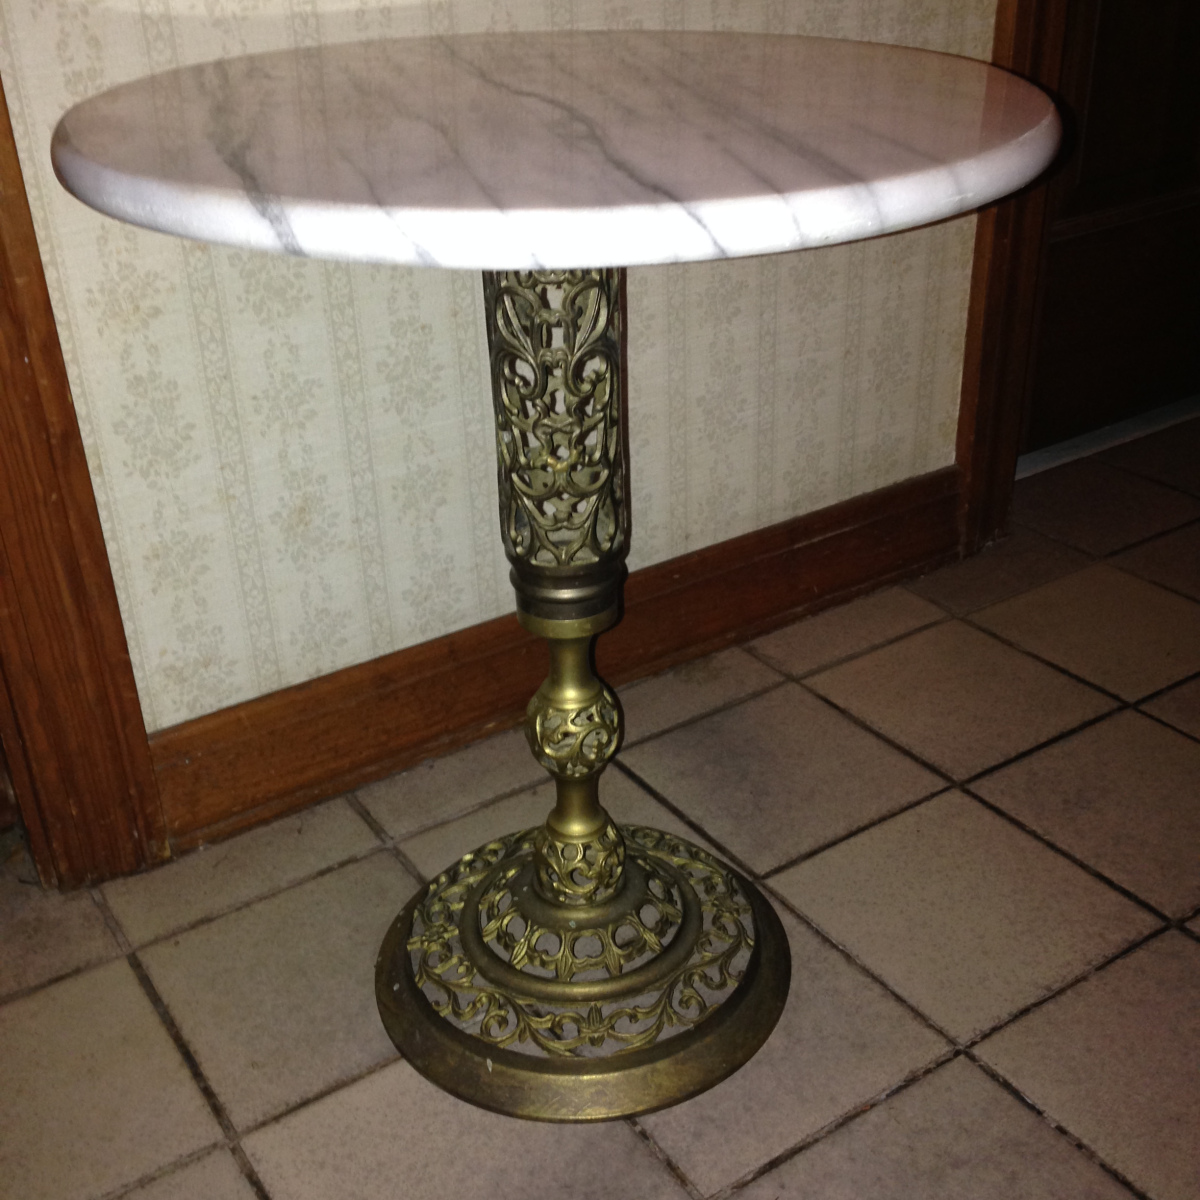 sold vintage round marble top table with ornate brass hallway accent metal bistro small deck half wall inch topper threshold white lamp curtains target homesense garden furniture